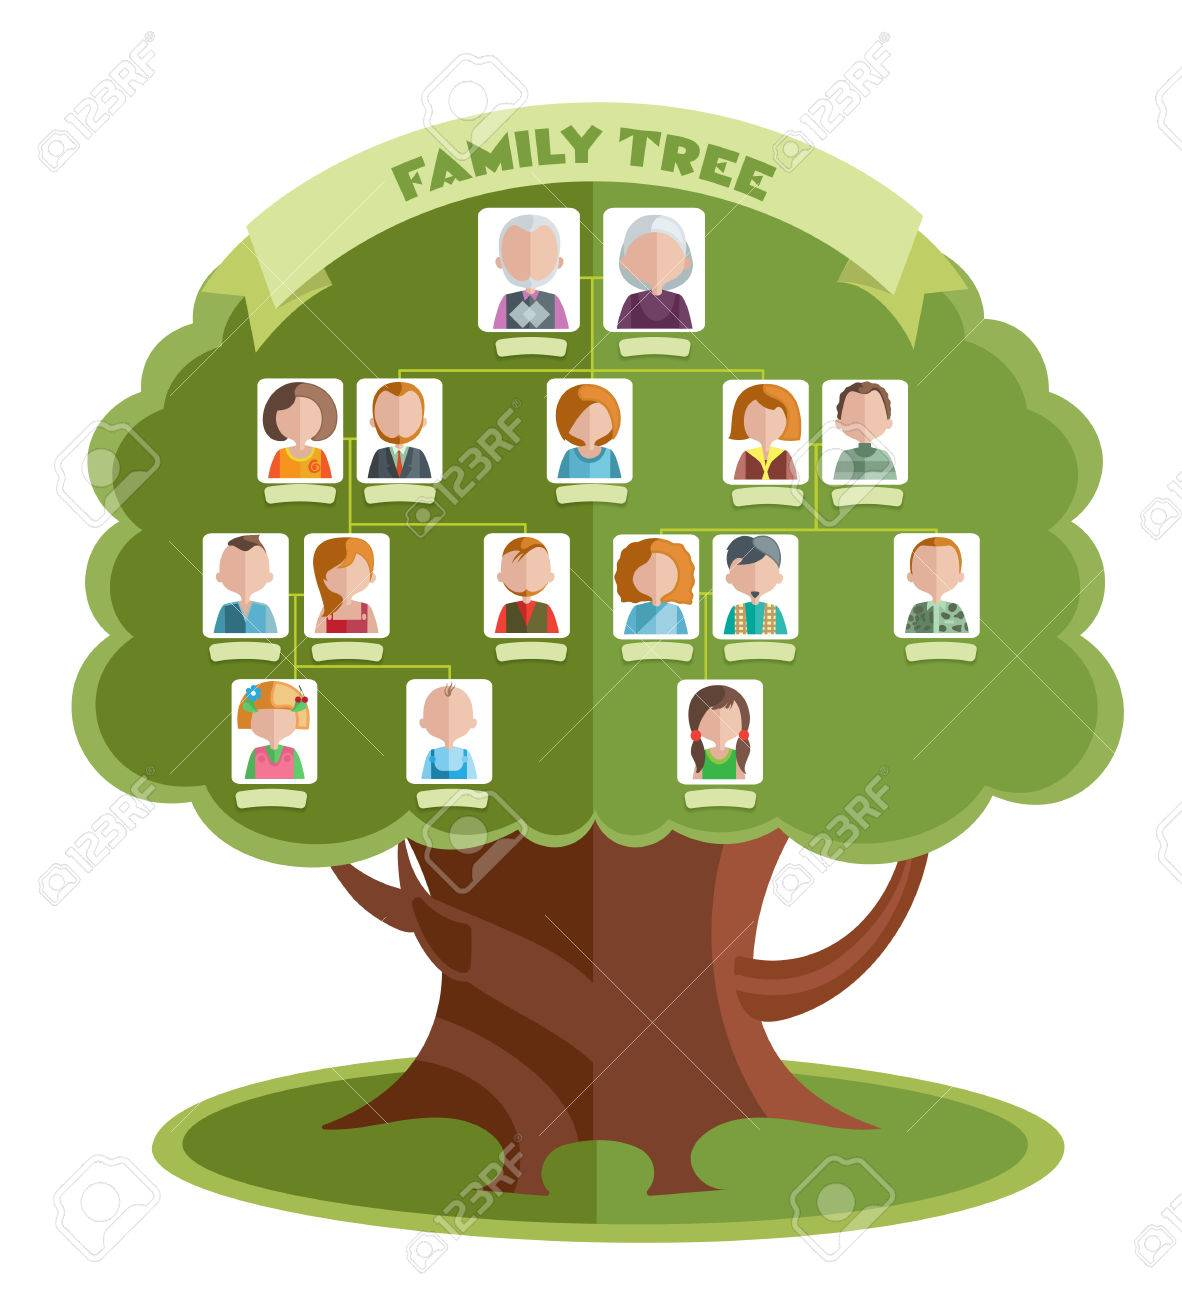 Family Tree Template With Portraits Of Relatives And Place For     Family tree template with portraits of relatives and place for text on  green background illustration Stock